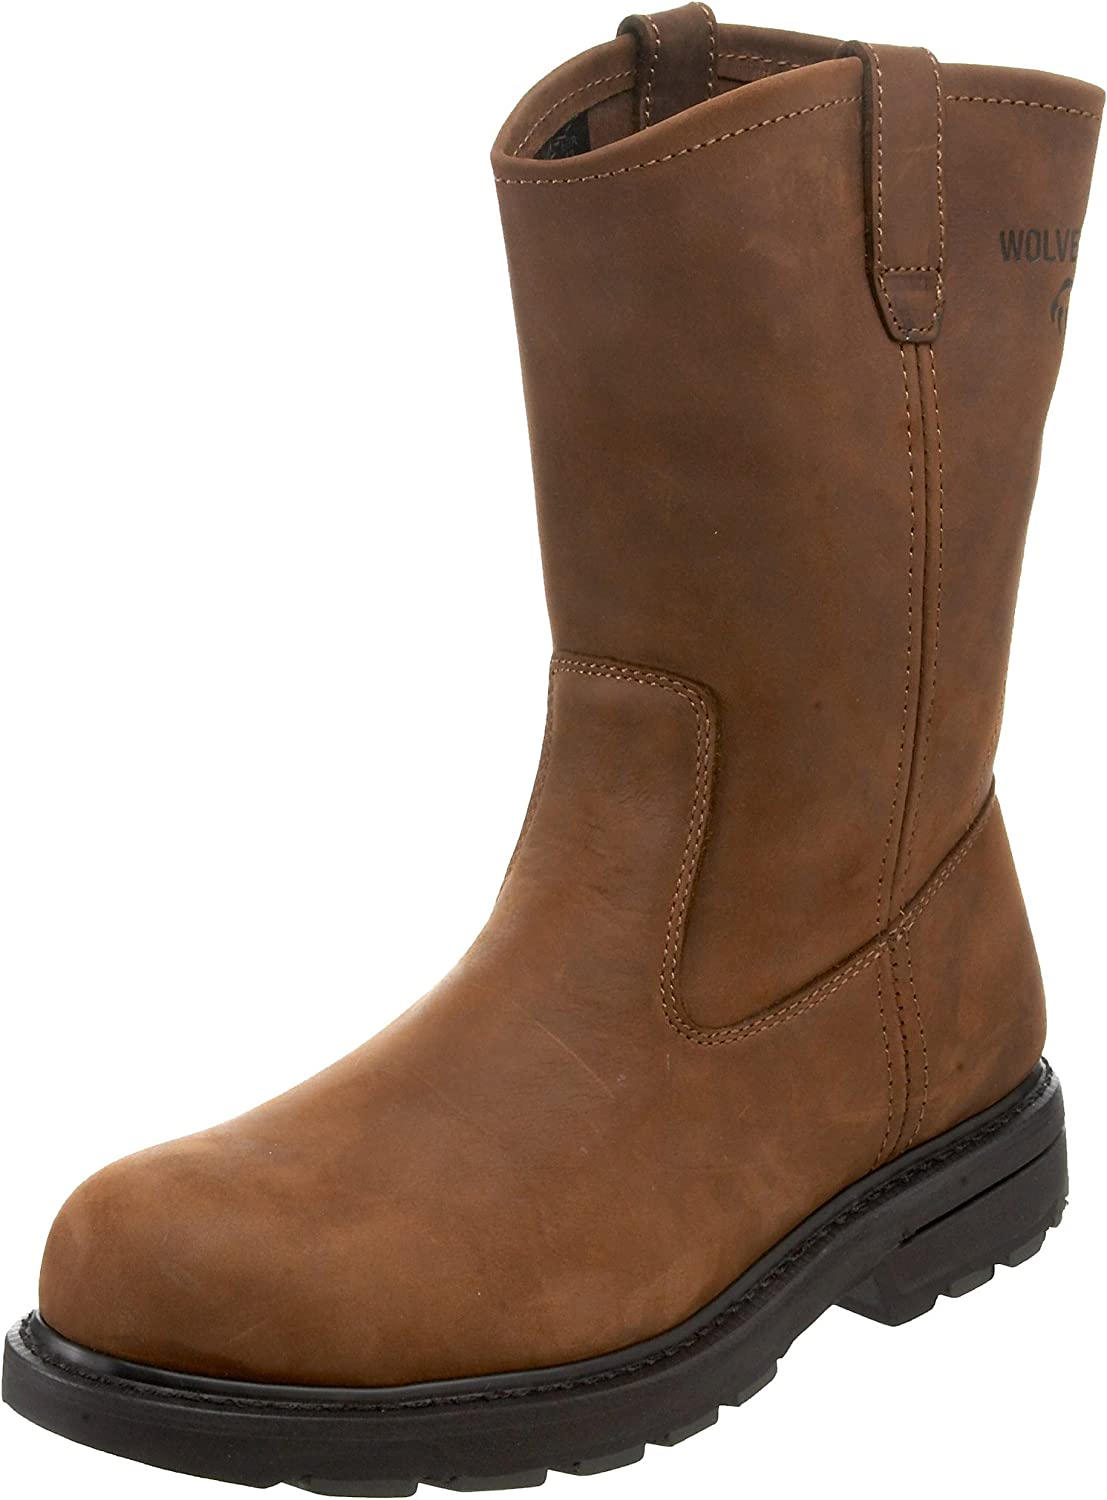 Wolverine Men's Max 47% OFF W04707 Online limited product Boot Work